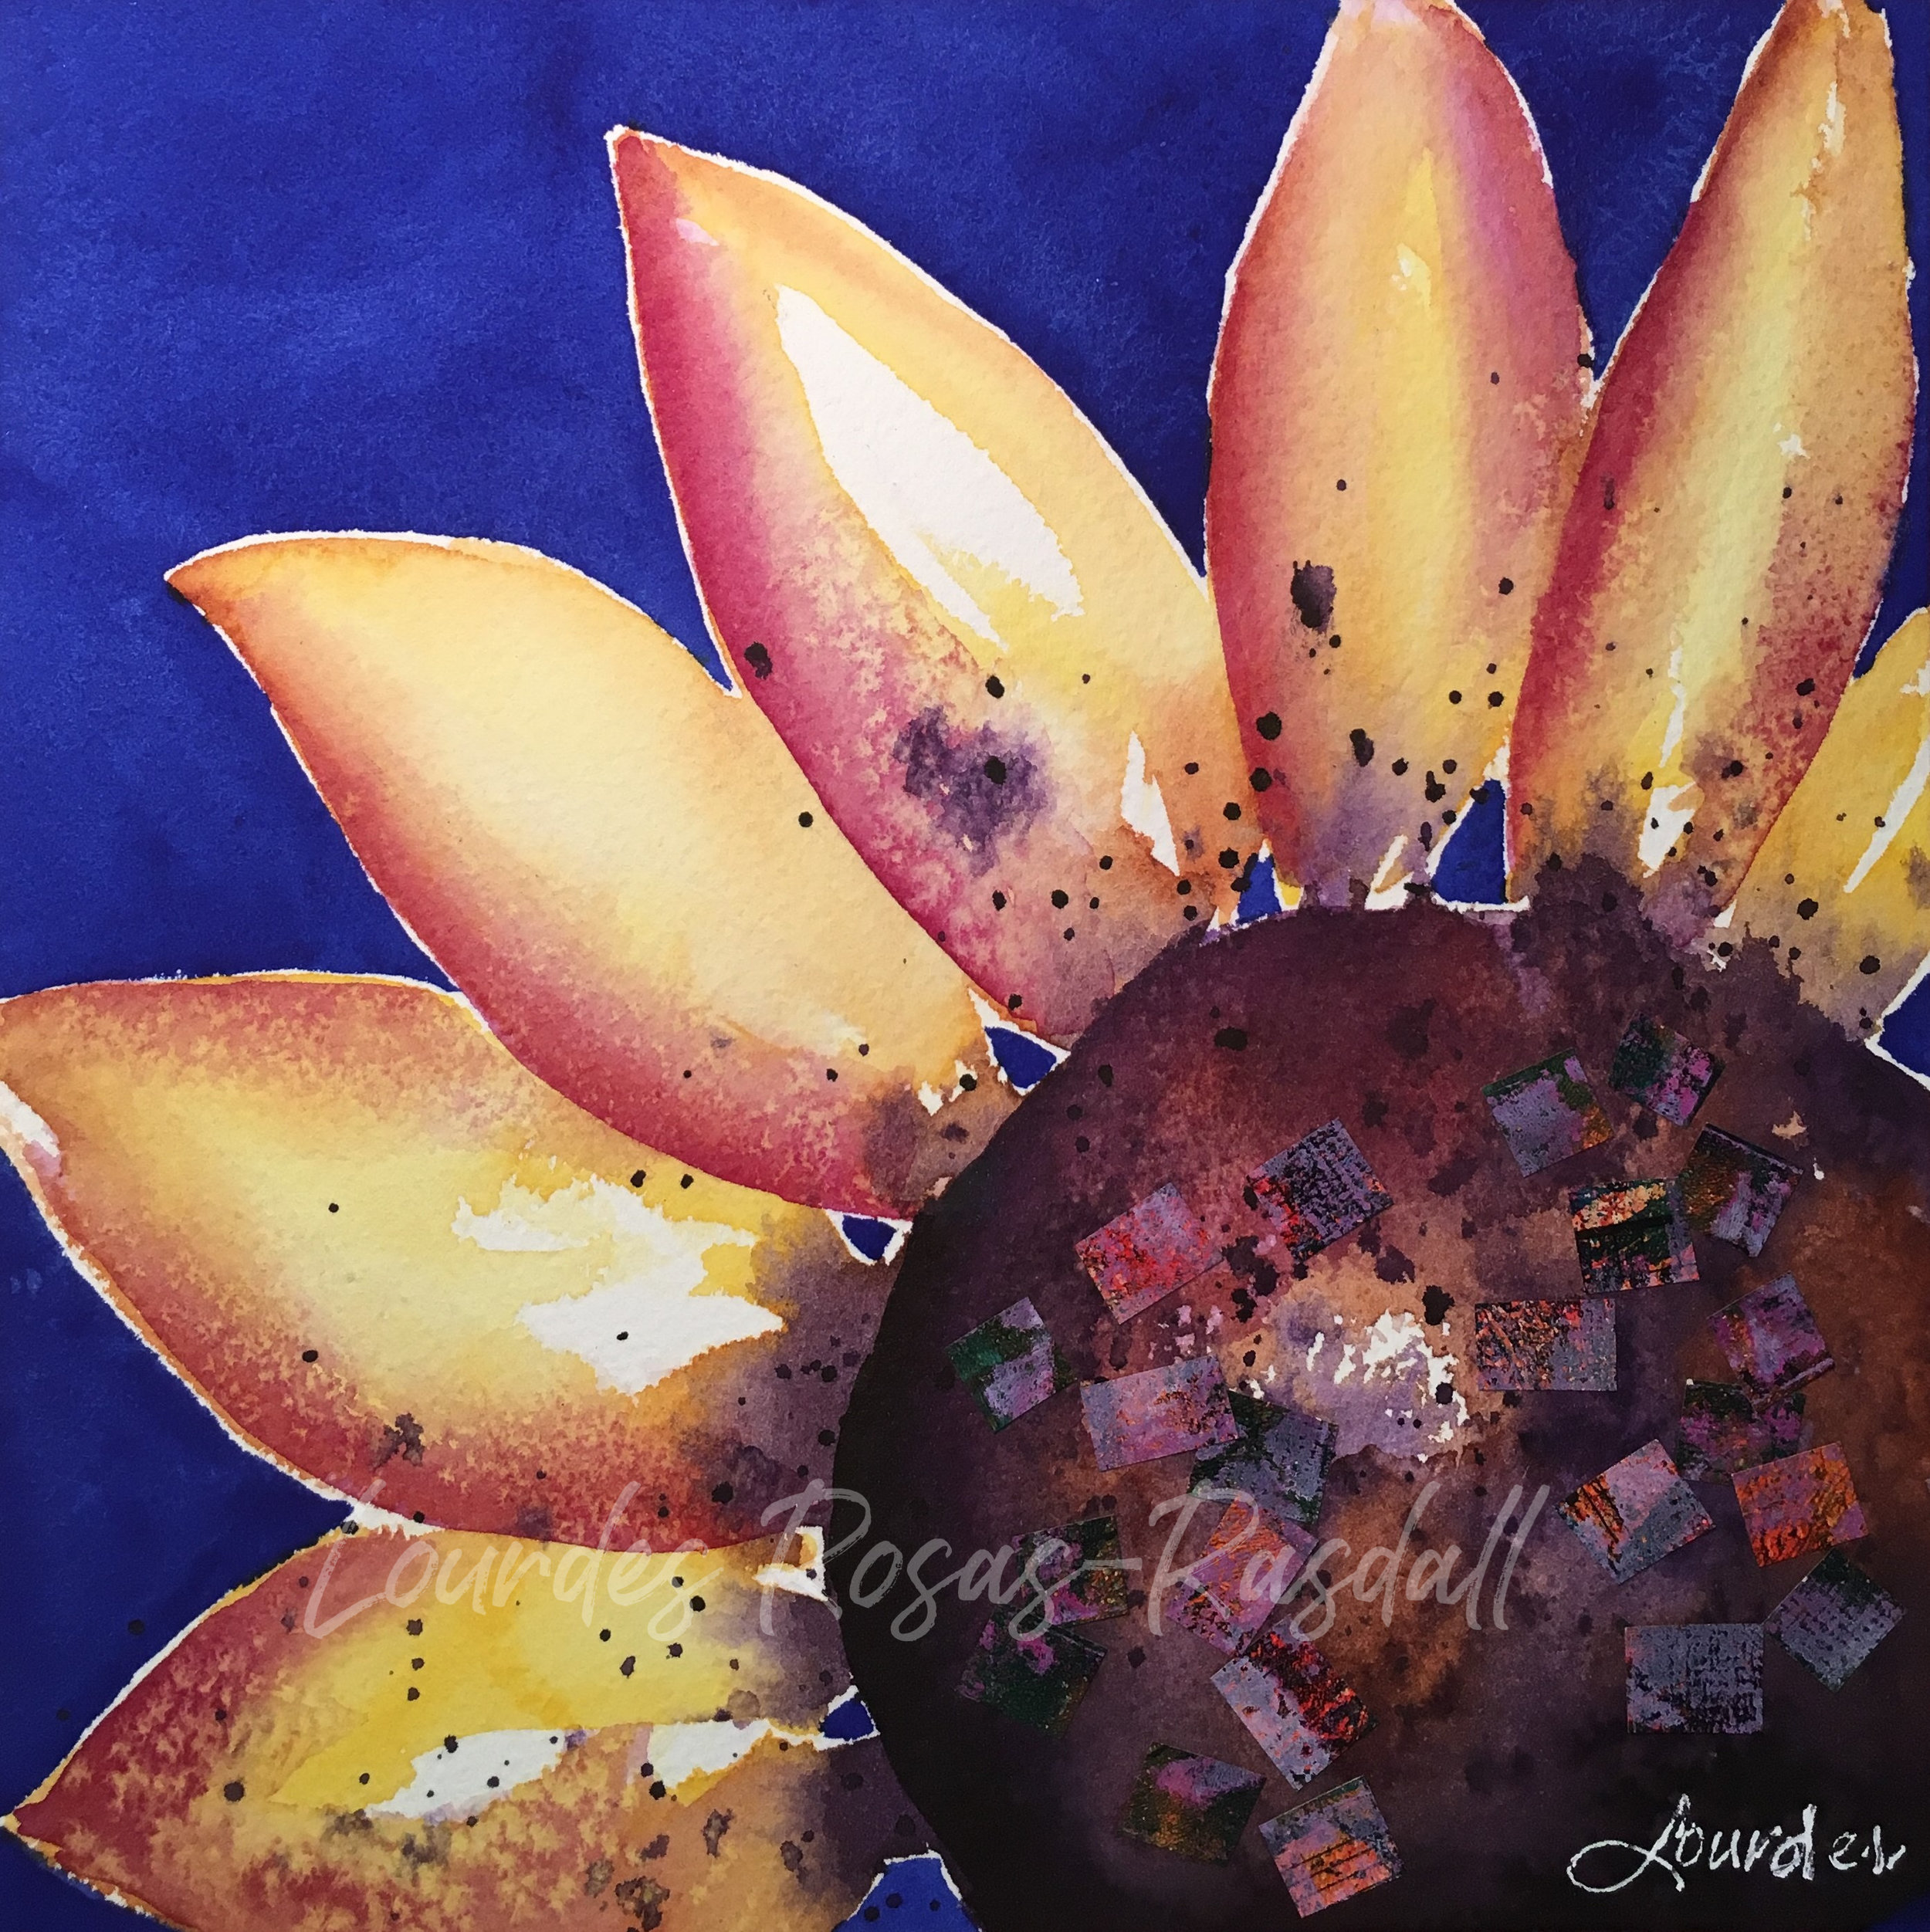 A New day | Sunflower Painted Papers Watercolor Art by Tampa Artist Lourdes Rosas-Rasdall